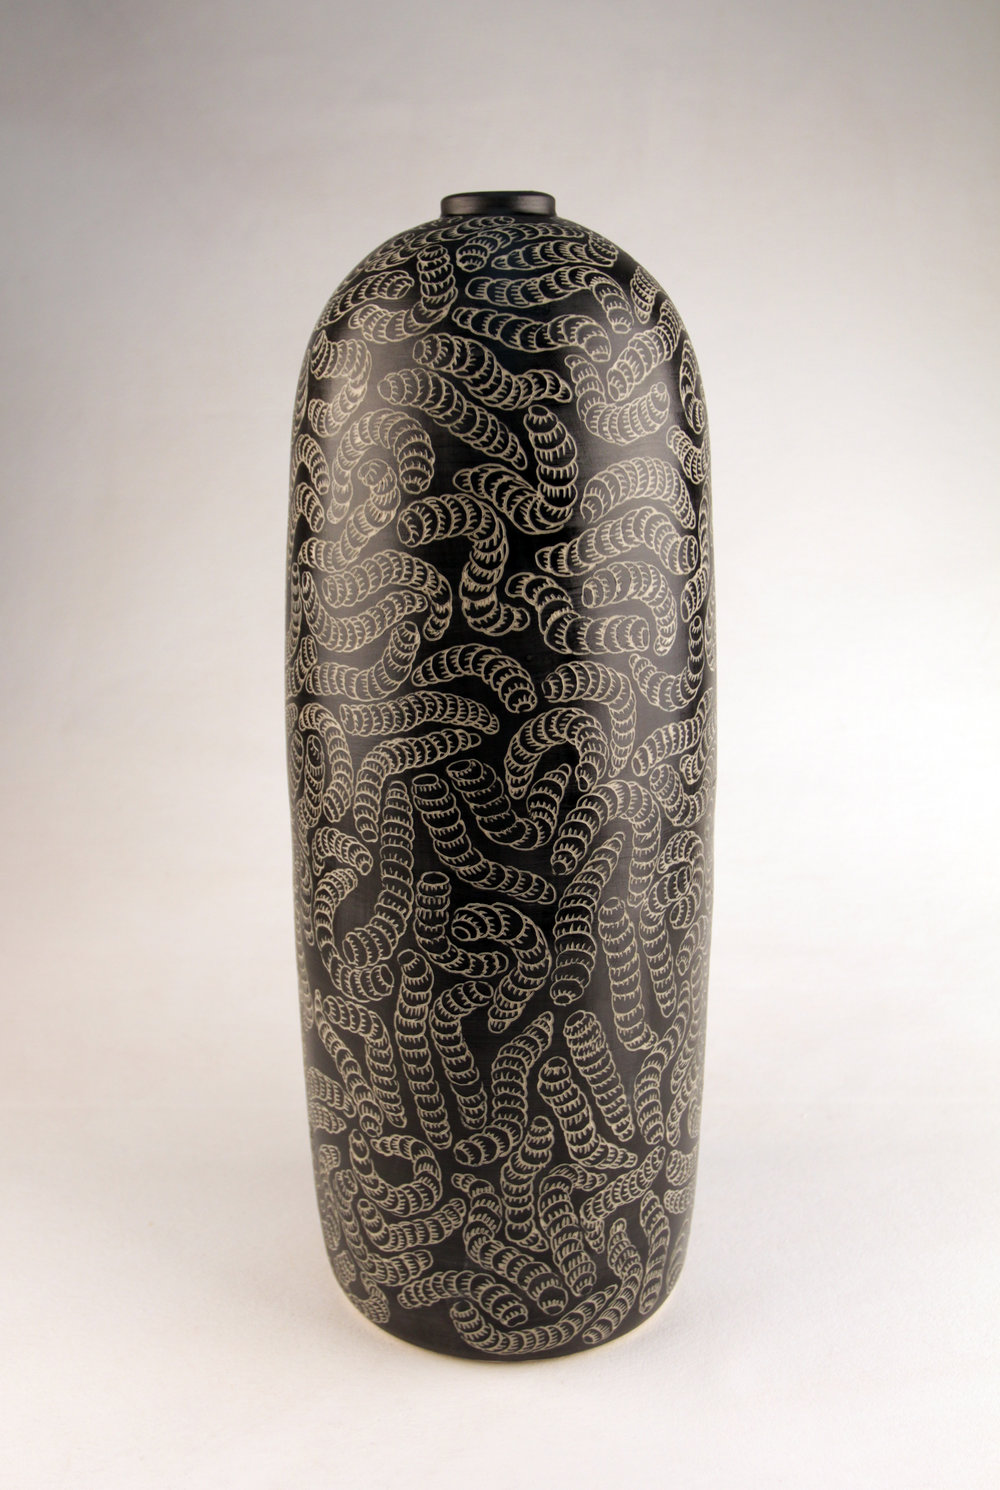 DEREK JUNGURRAYI THOMPSON  Maku Tjuta, 2016  435H x 166mm Stoneware Catalog #415C-16   Sold